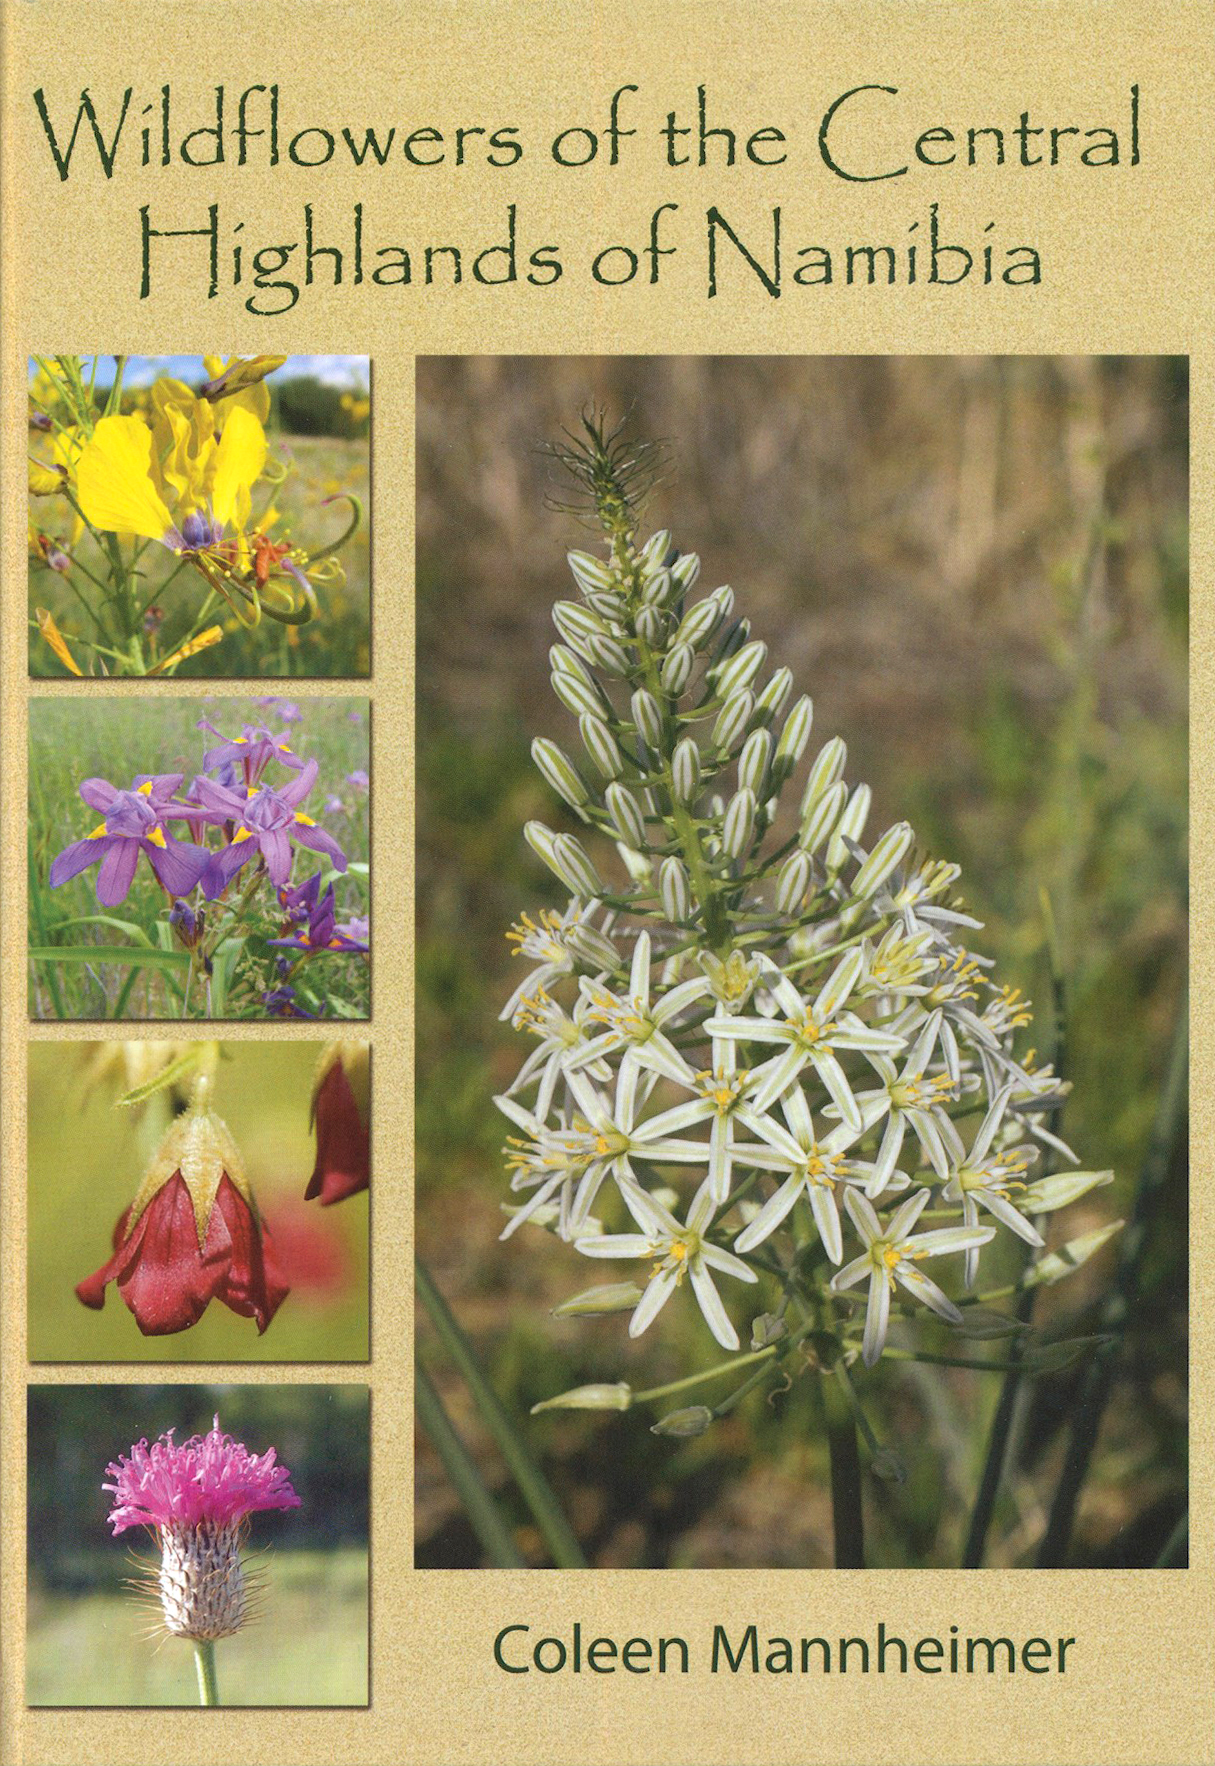 Wildflowers of the Central Highlands of Namibia, by Coleen